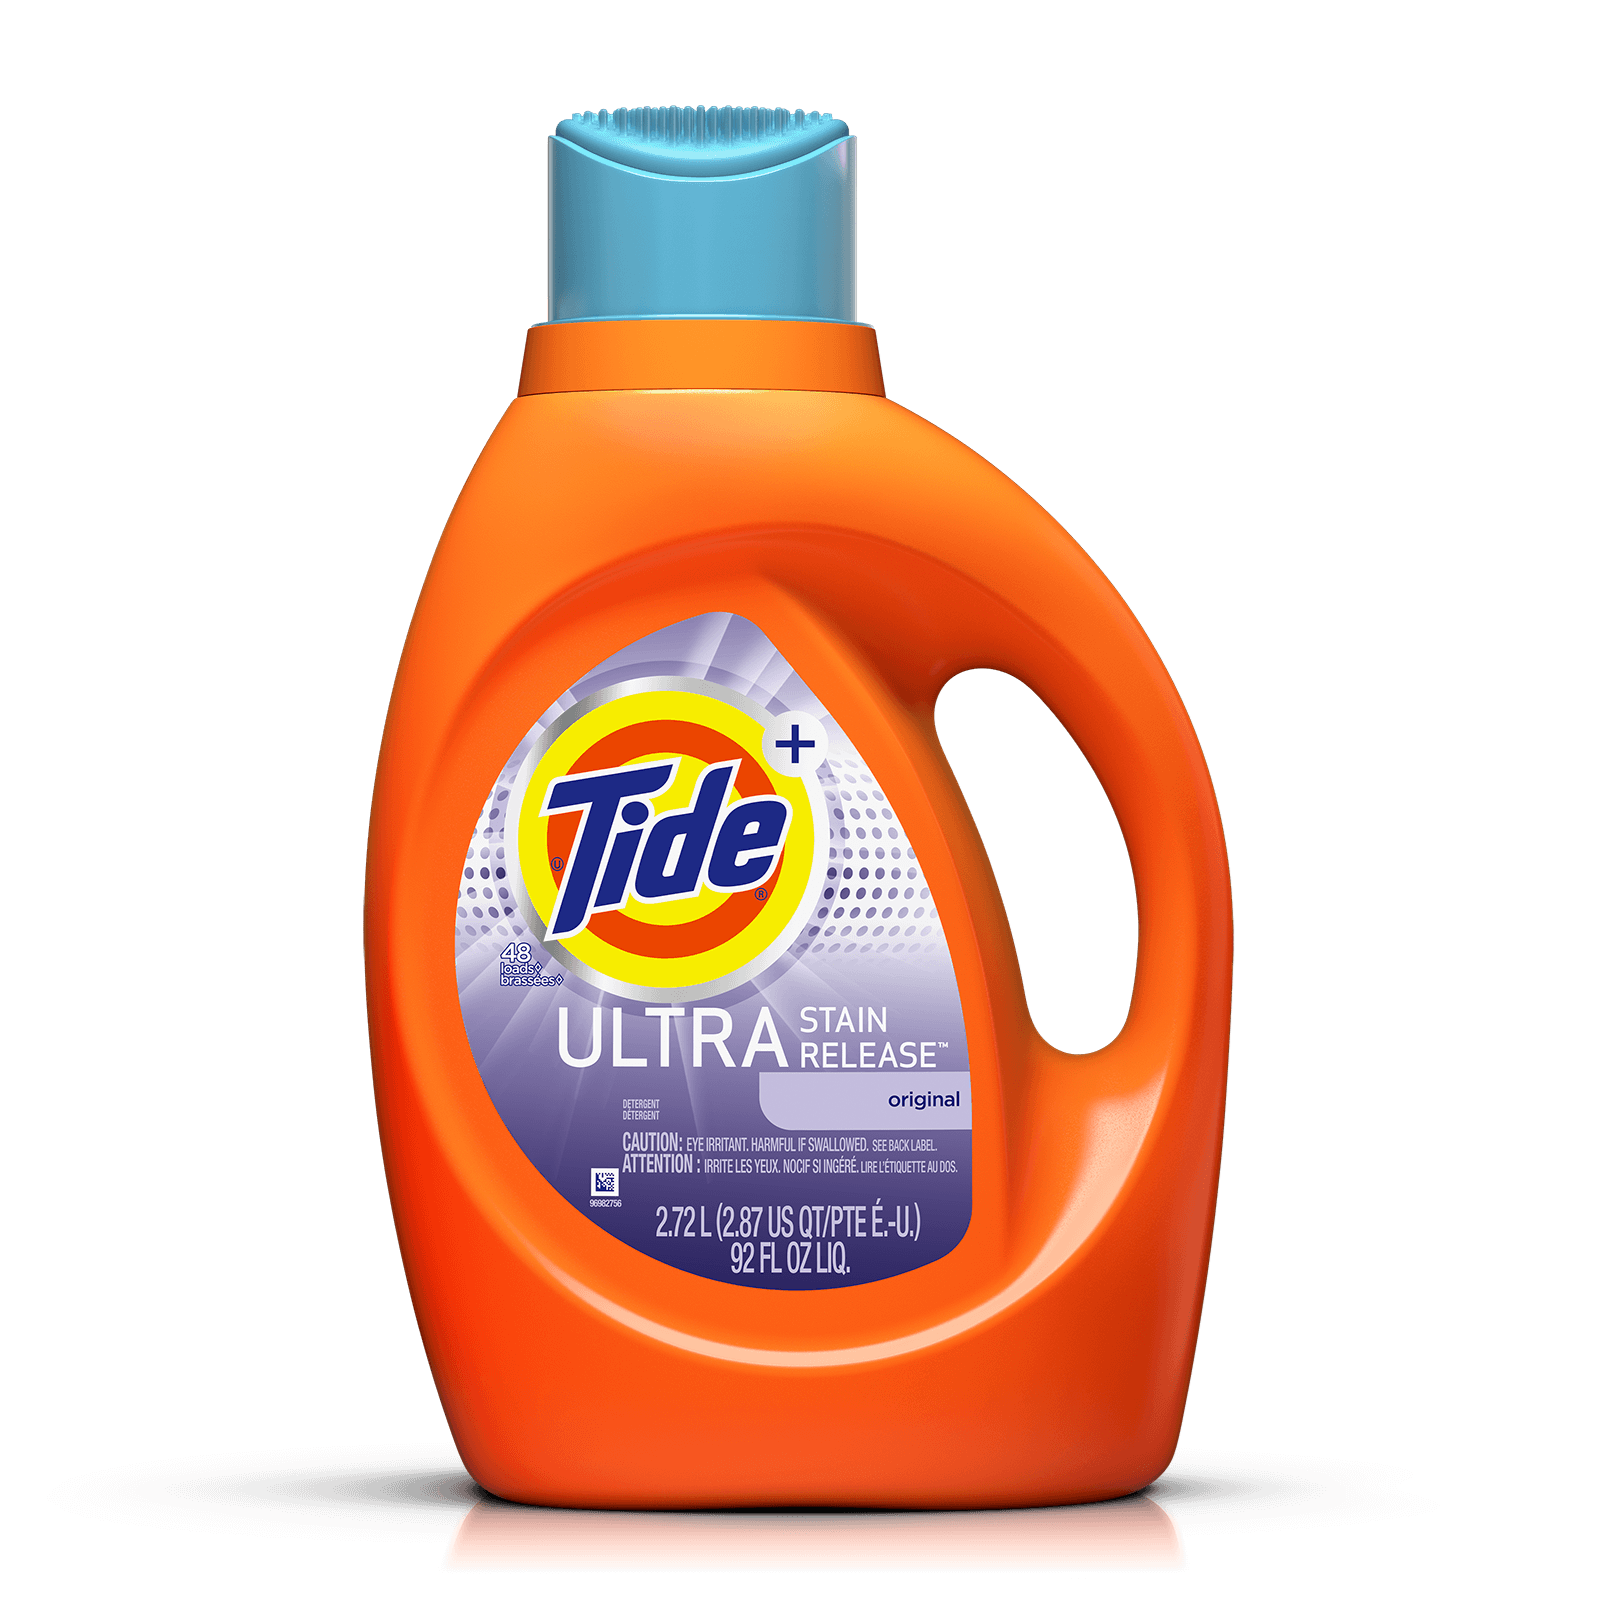 Tide Ultra Stain Release Liquid Laundry Detergent Laundry